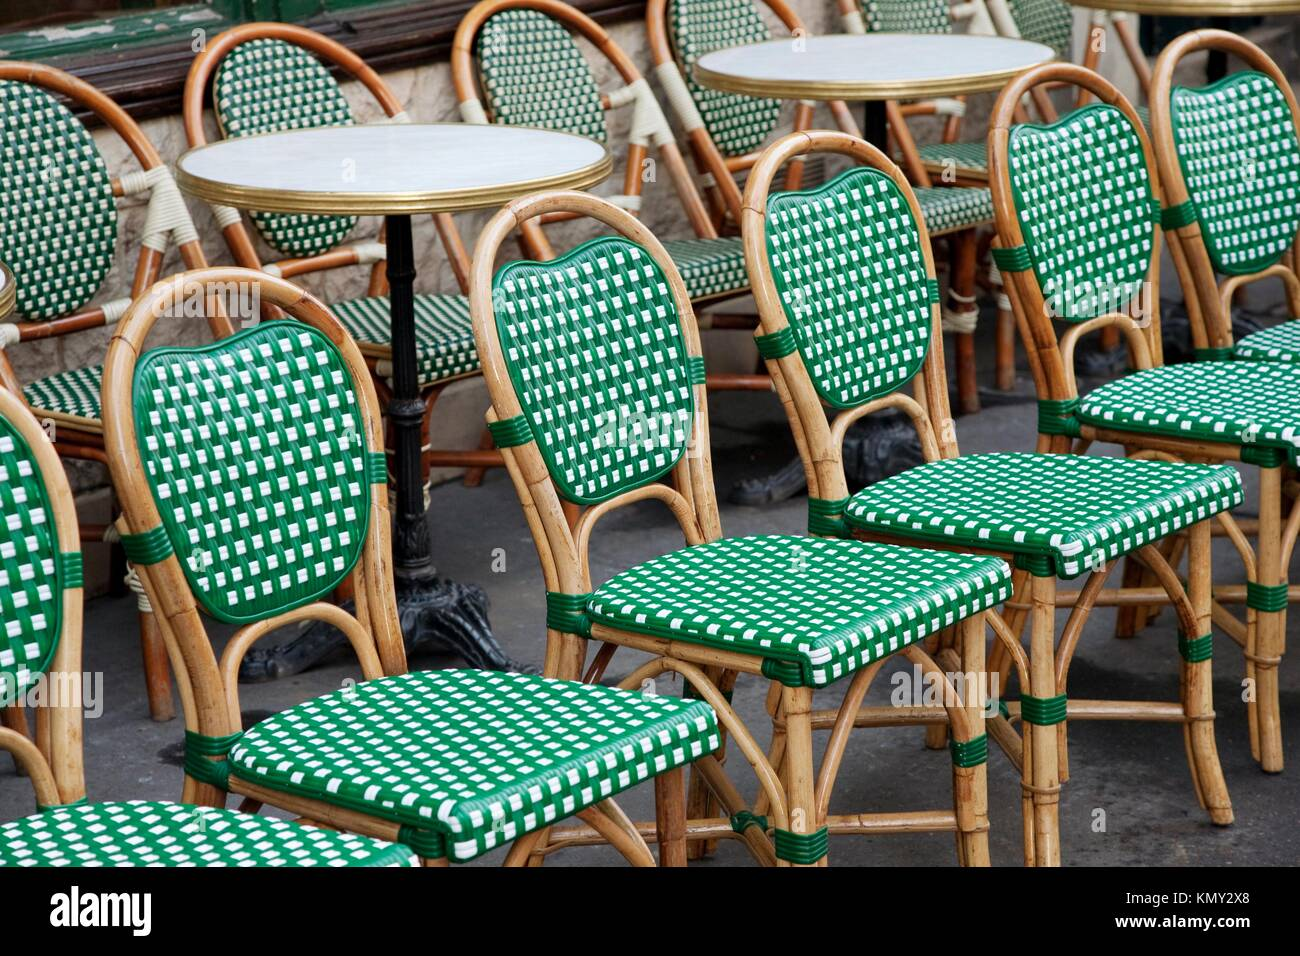 Swell Green And White Cafe Chairs In Paris France Stock Photo Alphanode Cool Chair Designs And Ideas Alphanodeonline